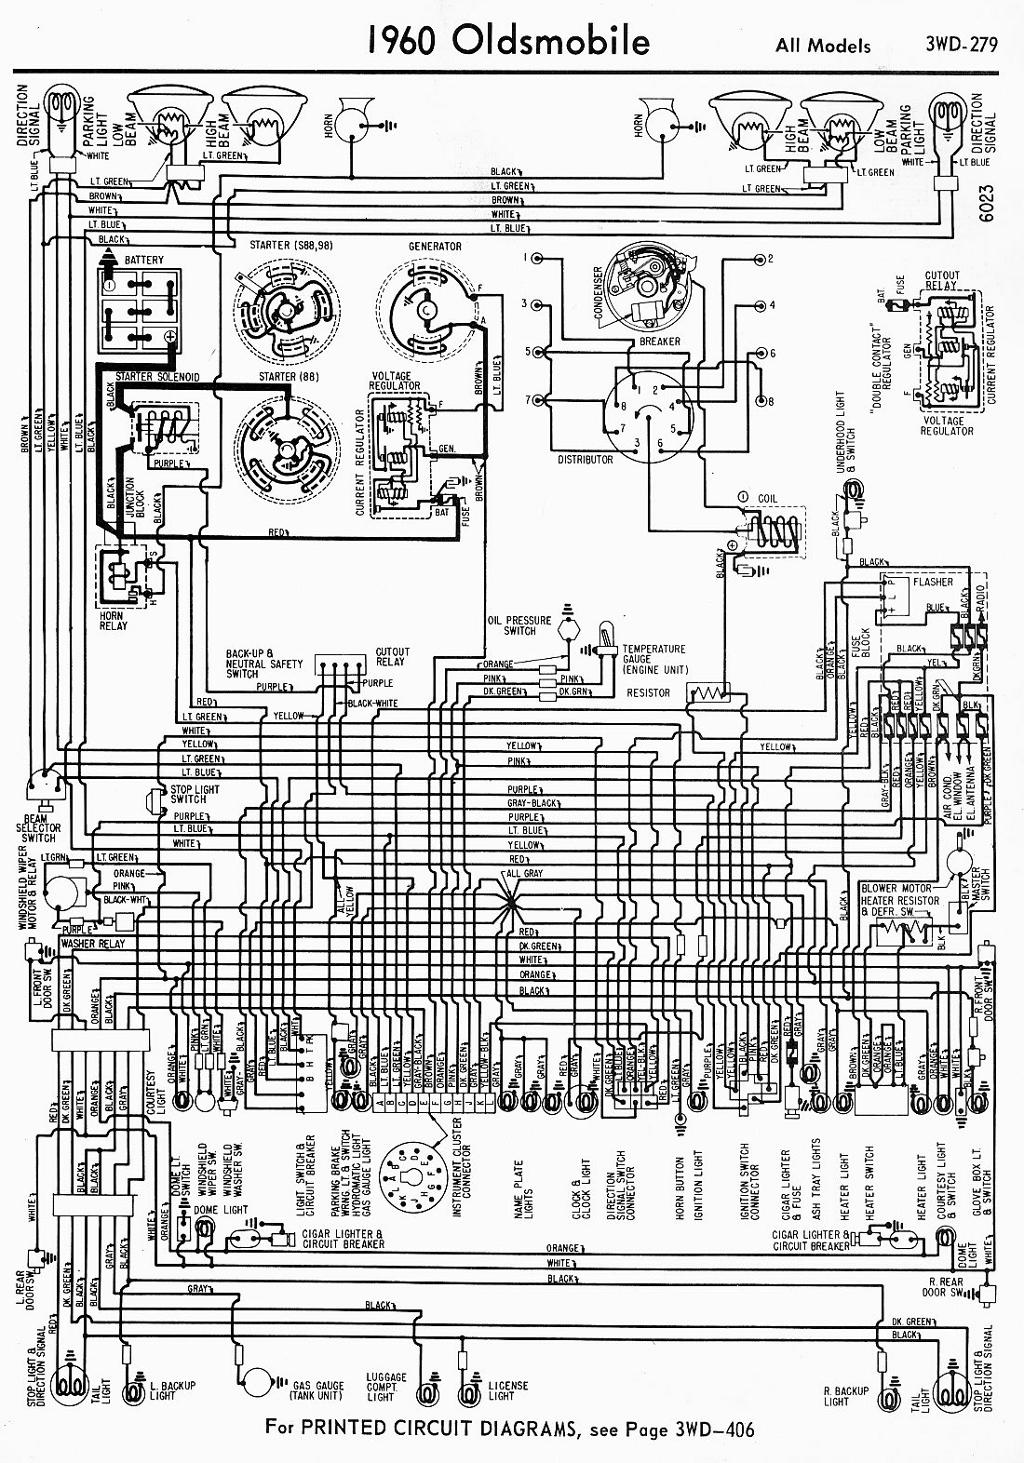 Oldsmobile wiring diagram circuit wiring and diagram hub oldsmobile car manuals wiring diagrams pdf fault codes rh automotive manuals net oldsmobile radio wiring diagram oldsmobile radio wiring diagram cheapraybanclubmaster Choice Image